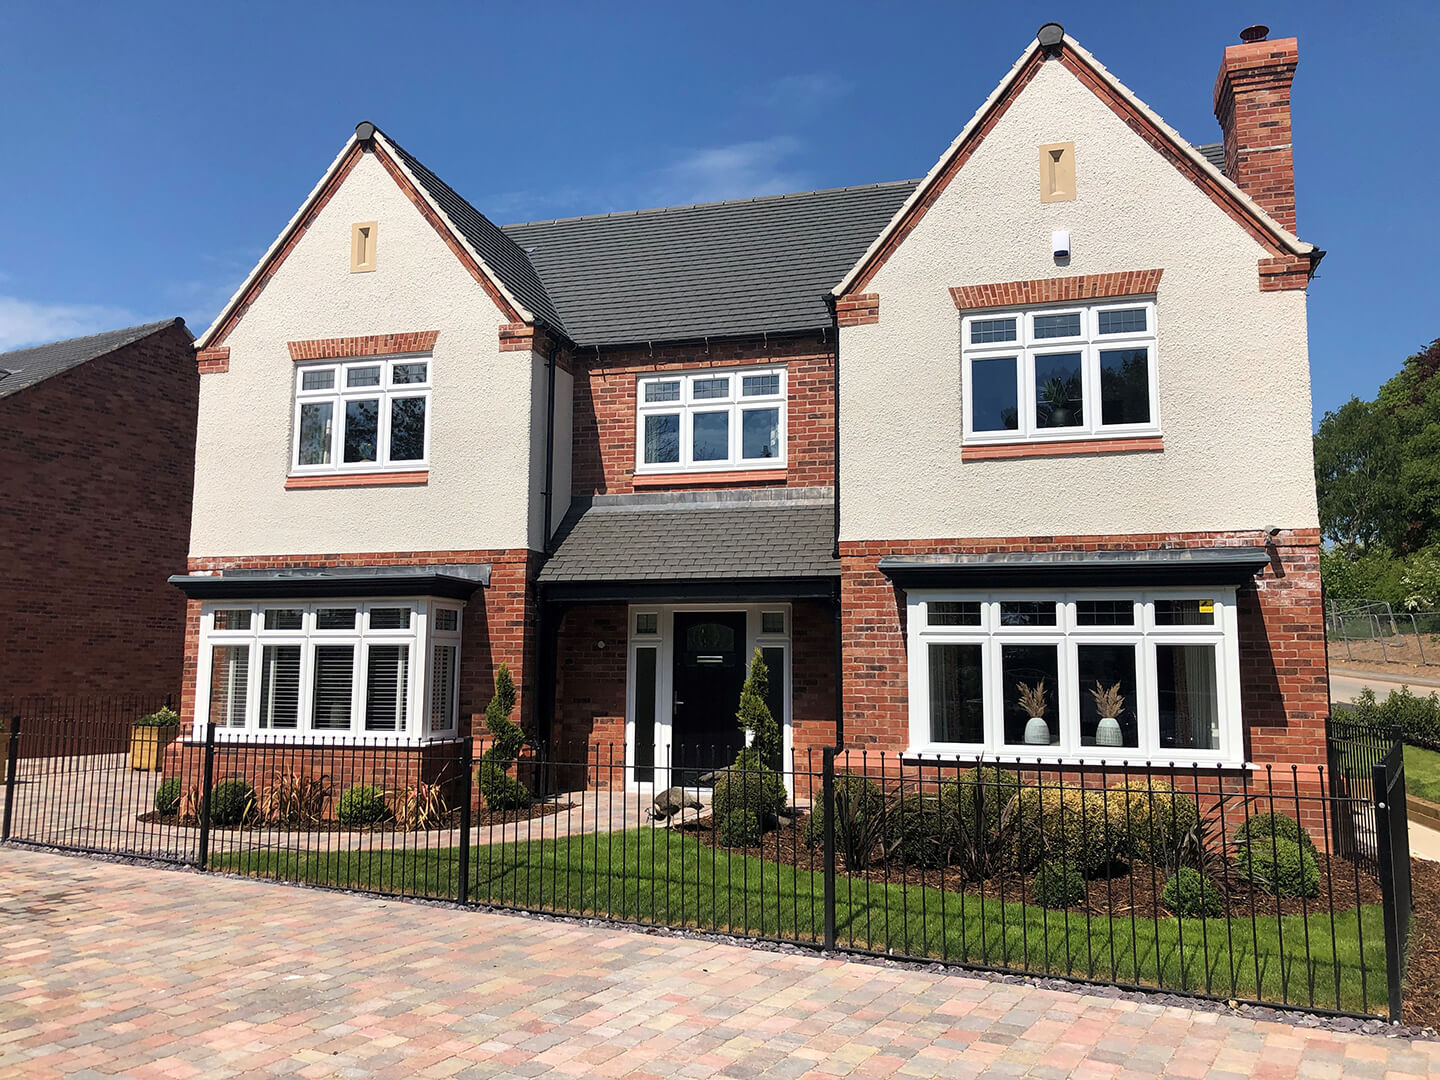 Repton Manor - show home exterior 2.